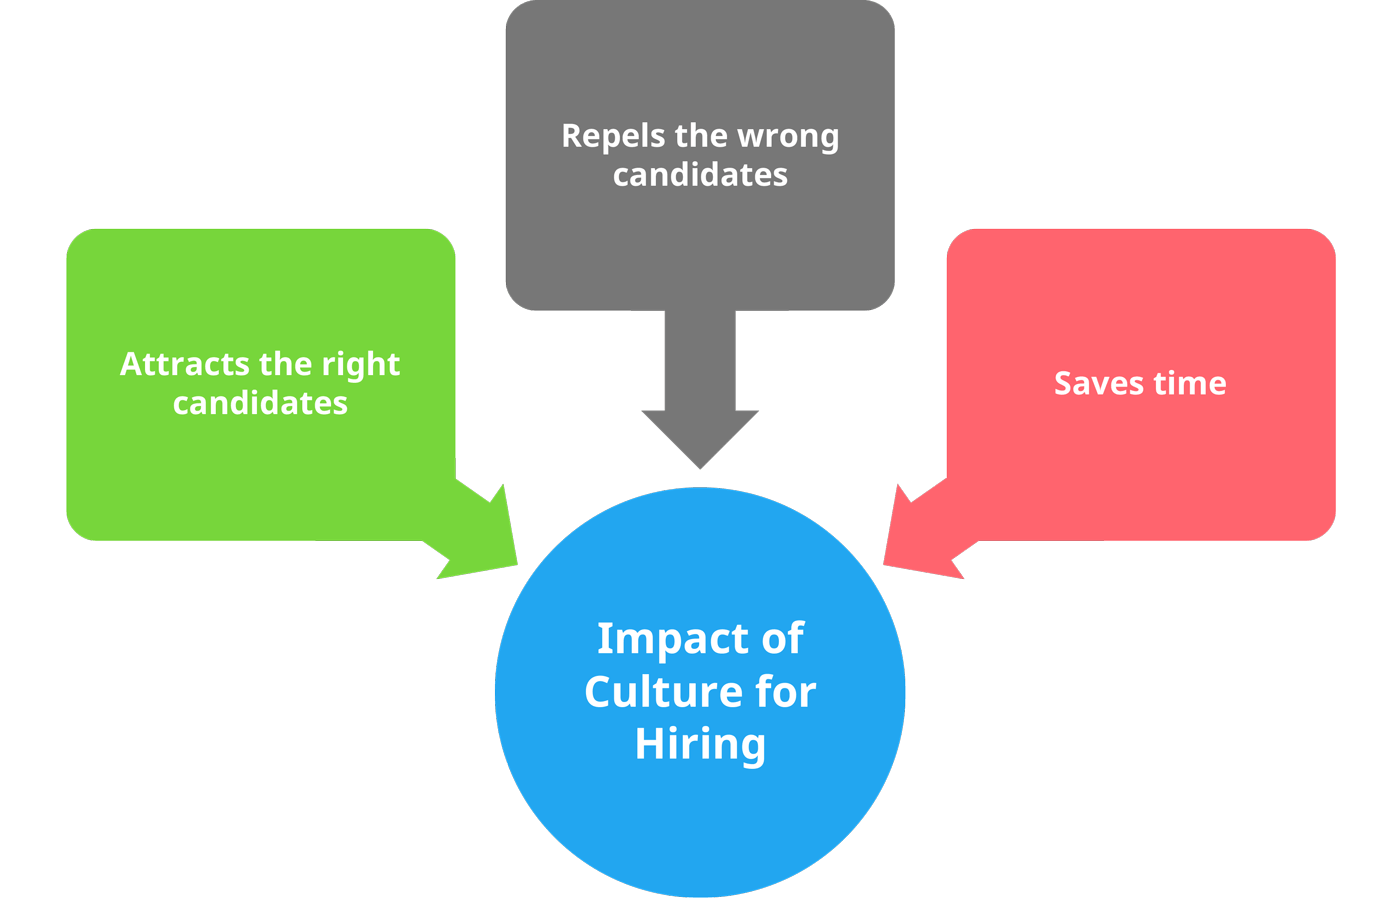 impact-of-culture-for-hiring